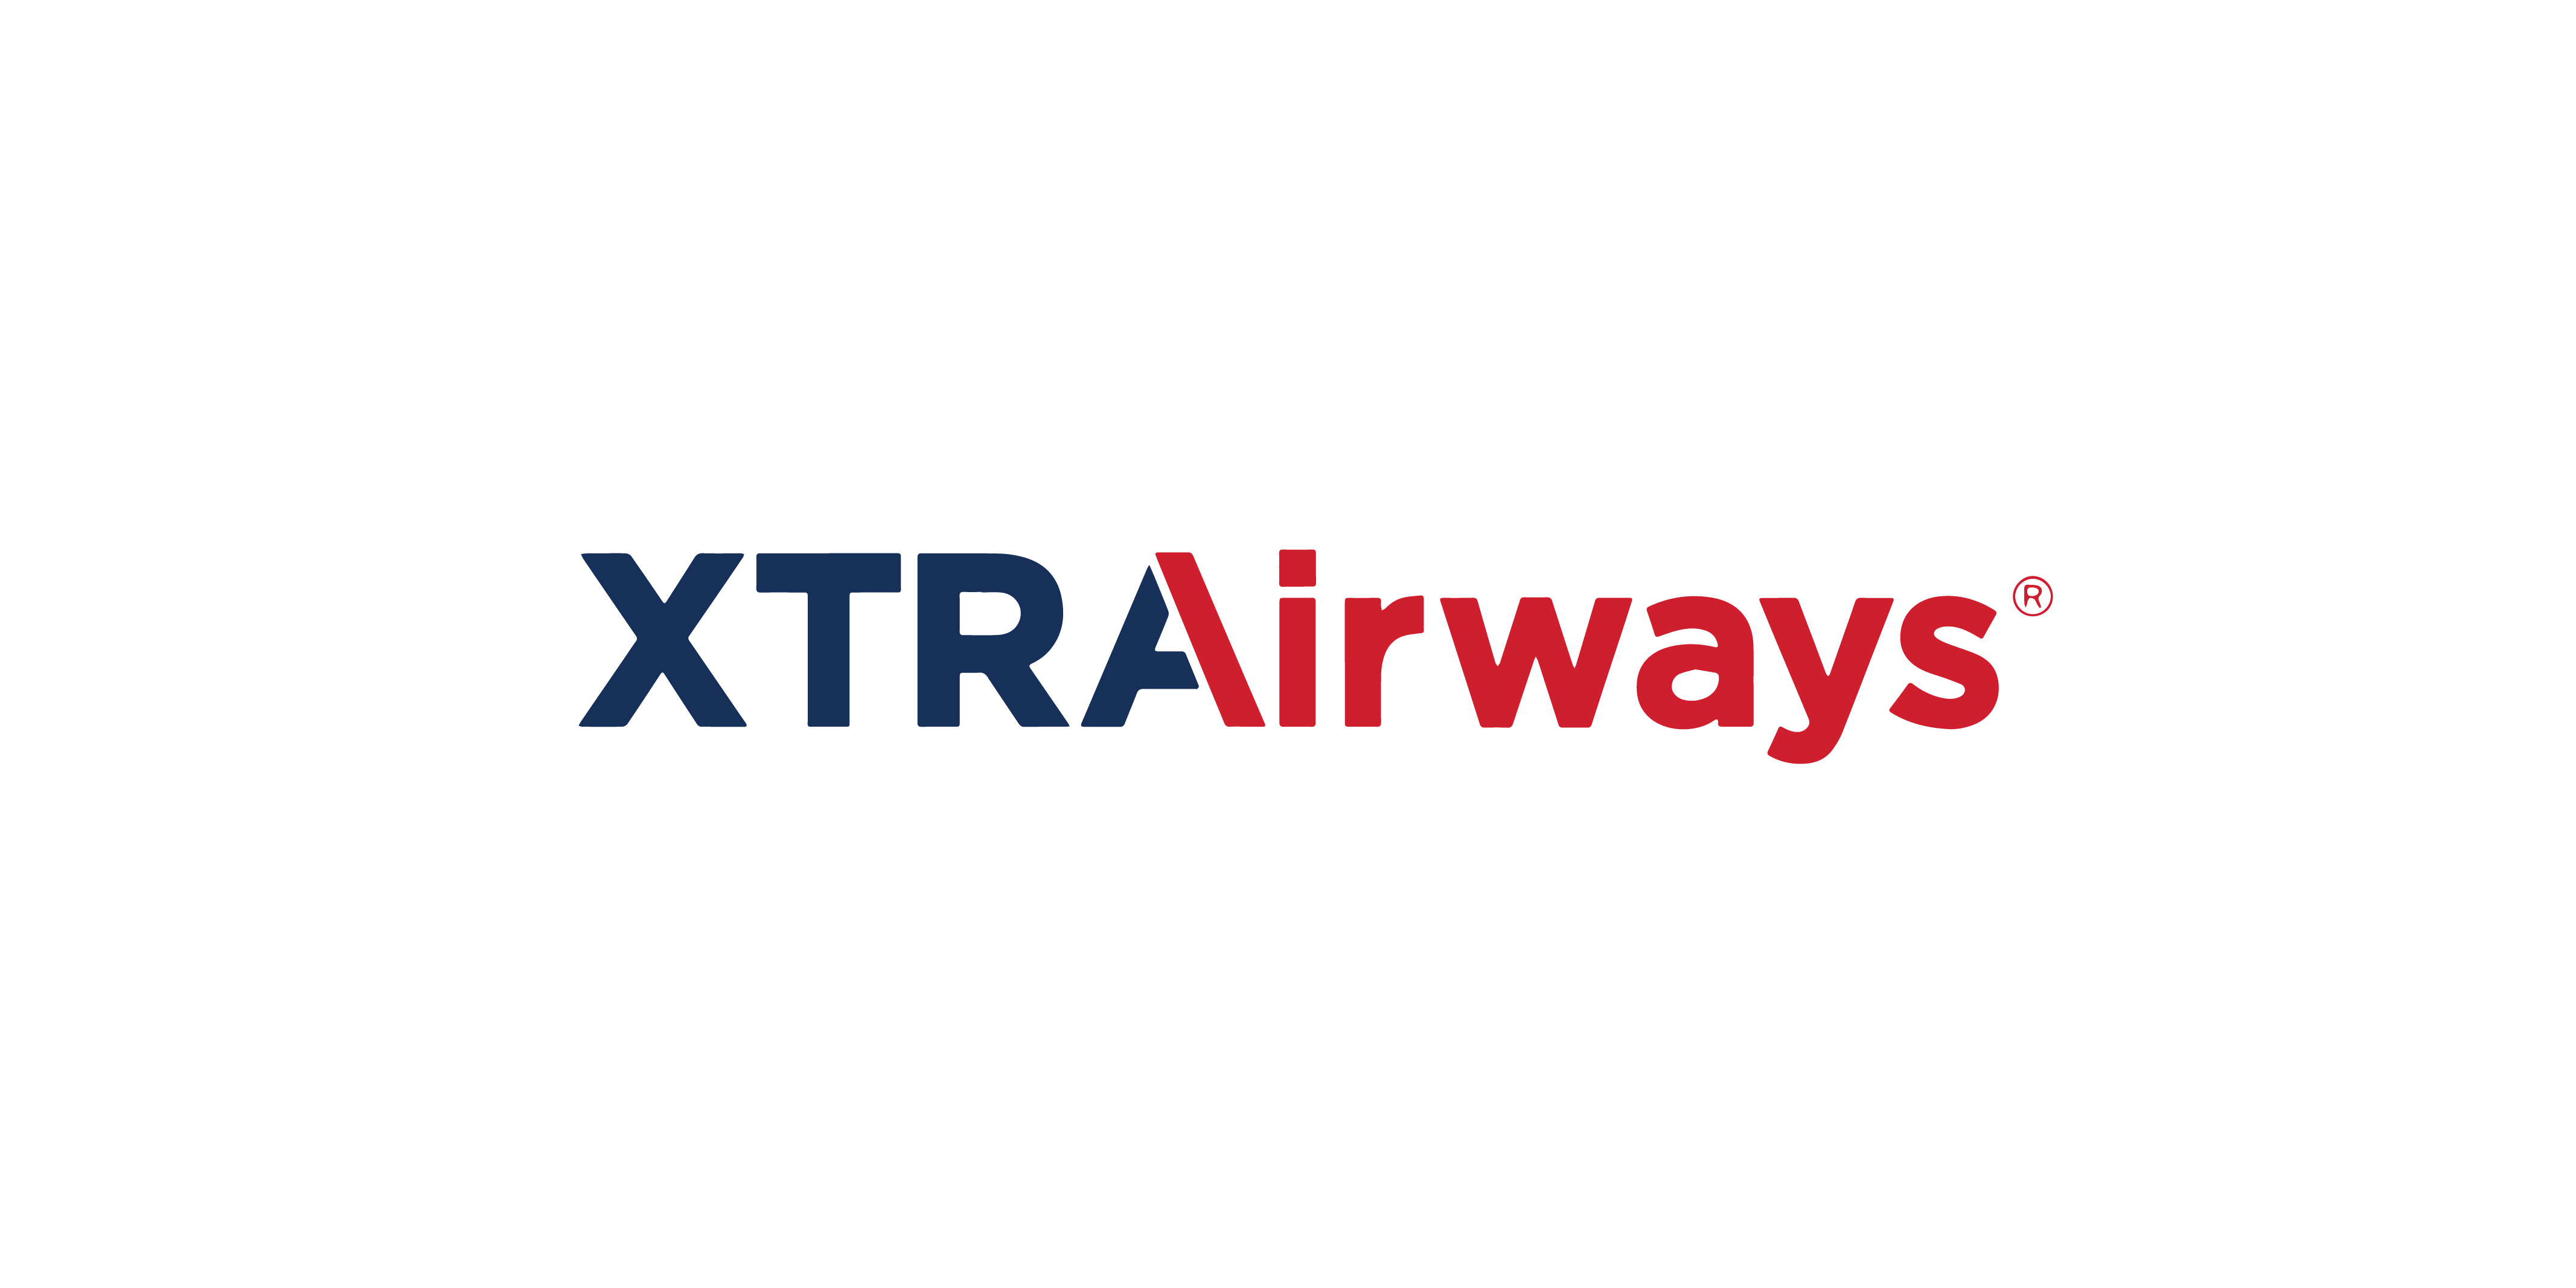 XTRA Airways selects Vistair to provide Document Management